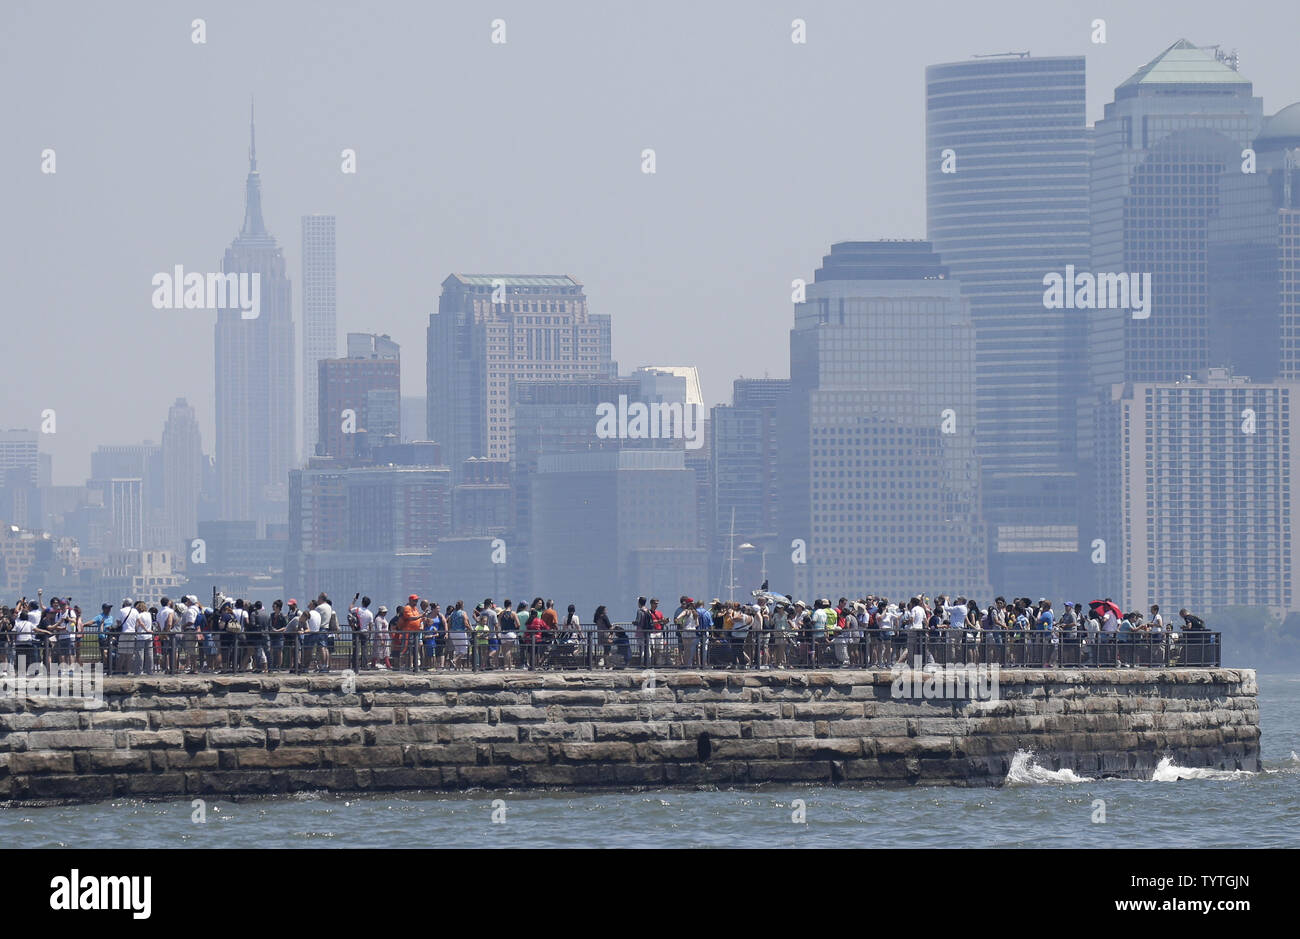 Tourists stand on Liberty Island with a view of The Statue of Liberty and Manhatan 2 days before Independence Day and the 4th of July in New York City on July 2, 2018.      Photo by John Angelillo/UPI Stock Photo